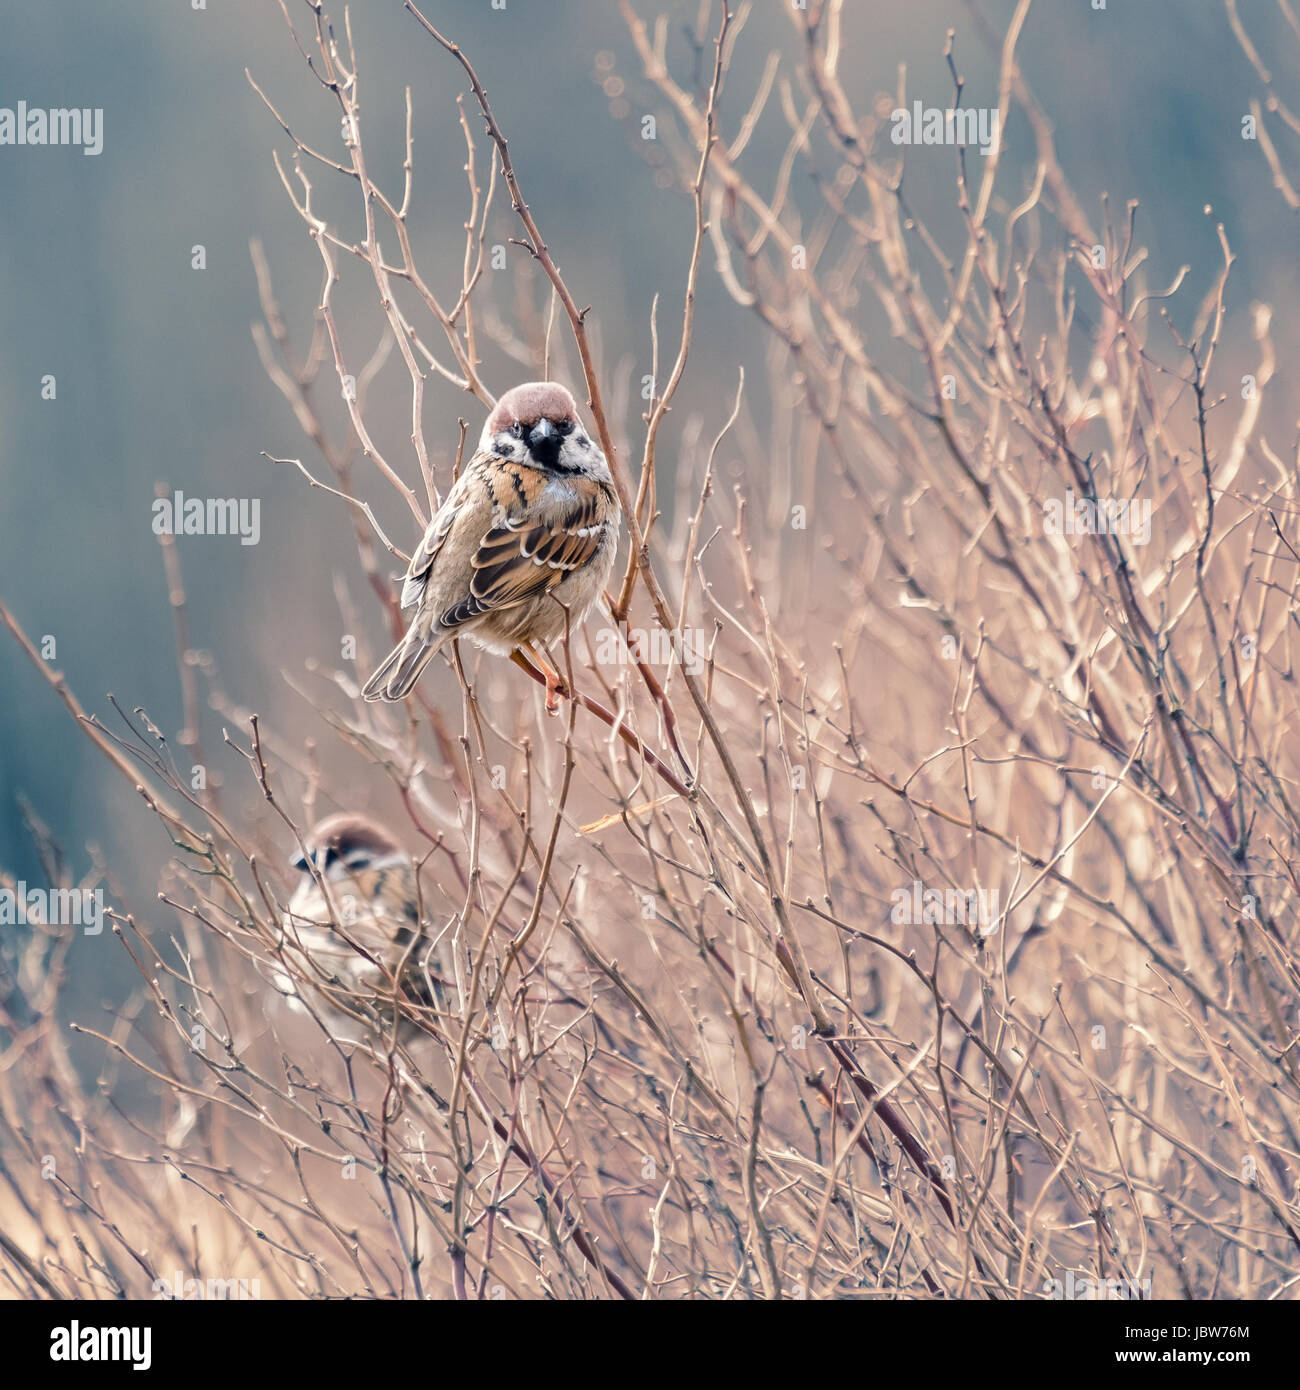 Little cute sparrow sitting on the branch - Stock Image